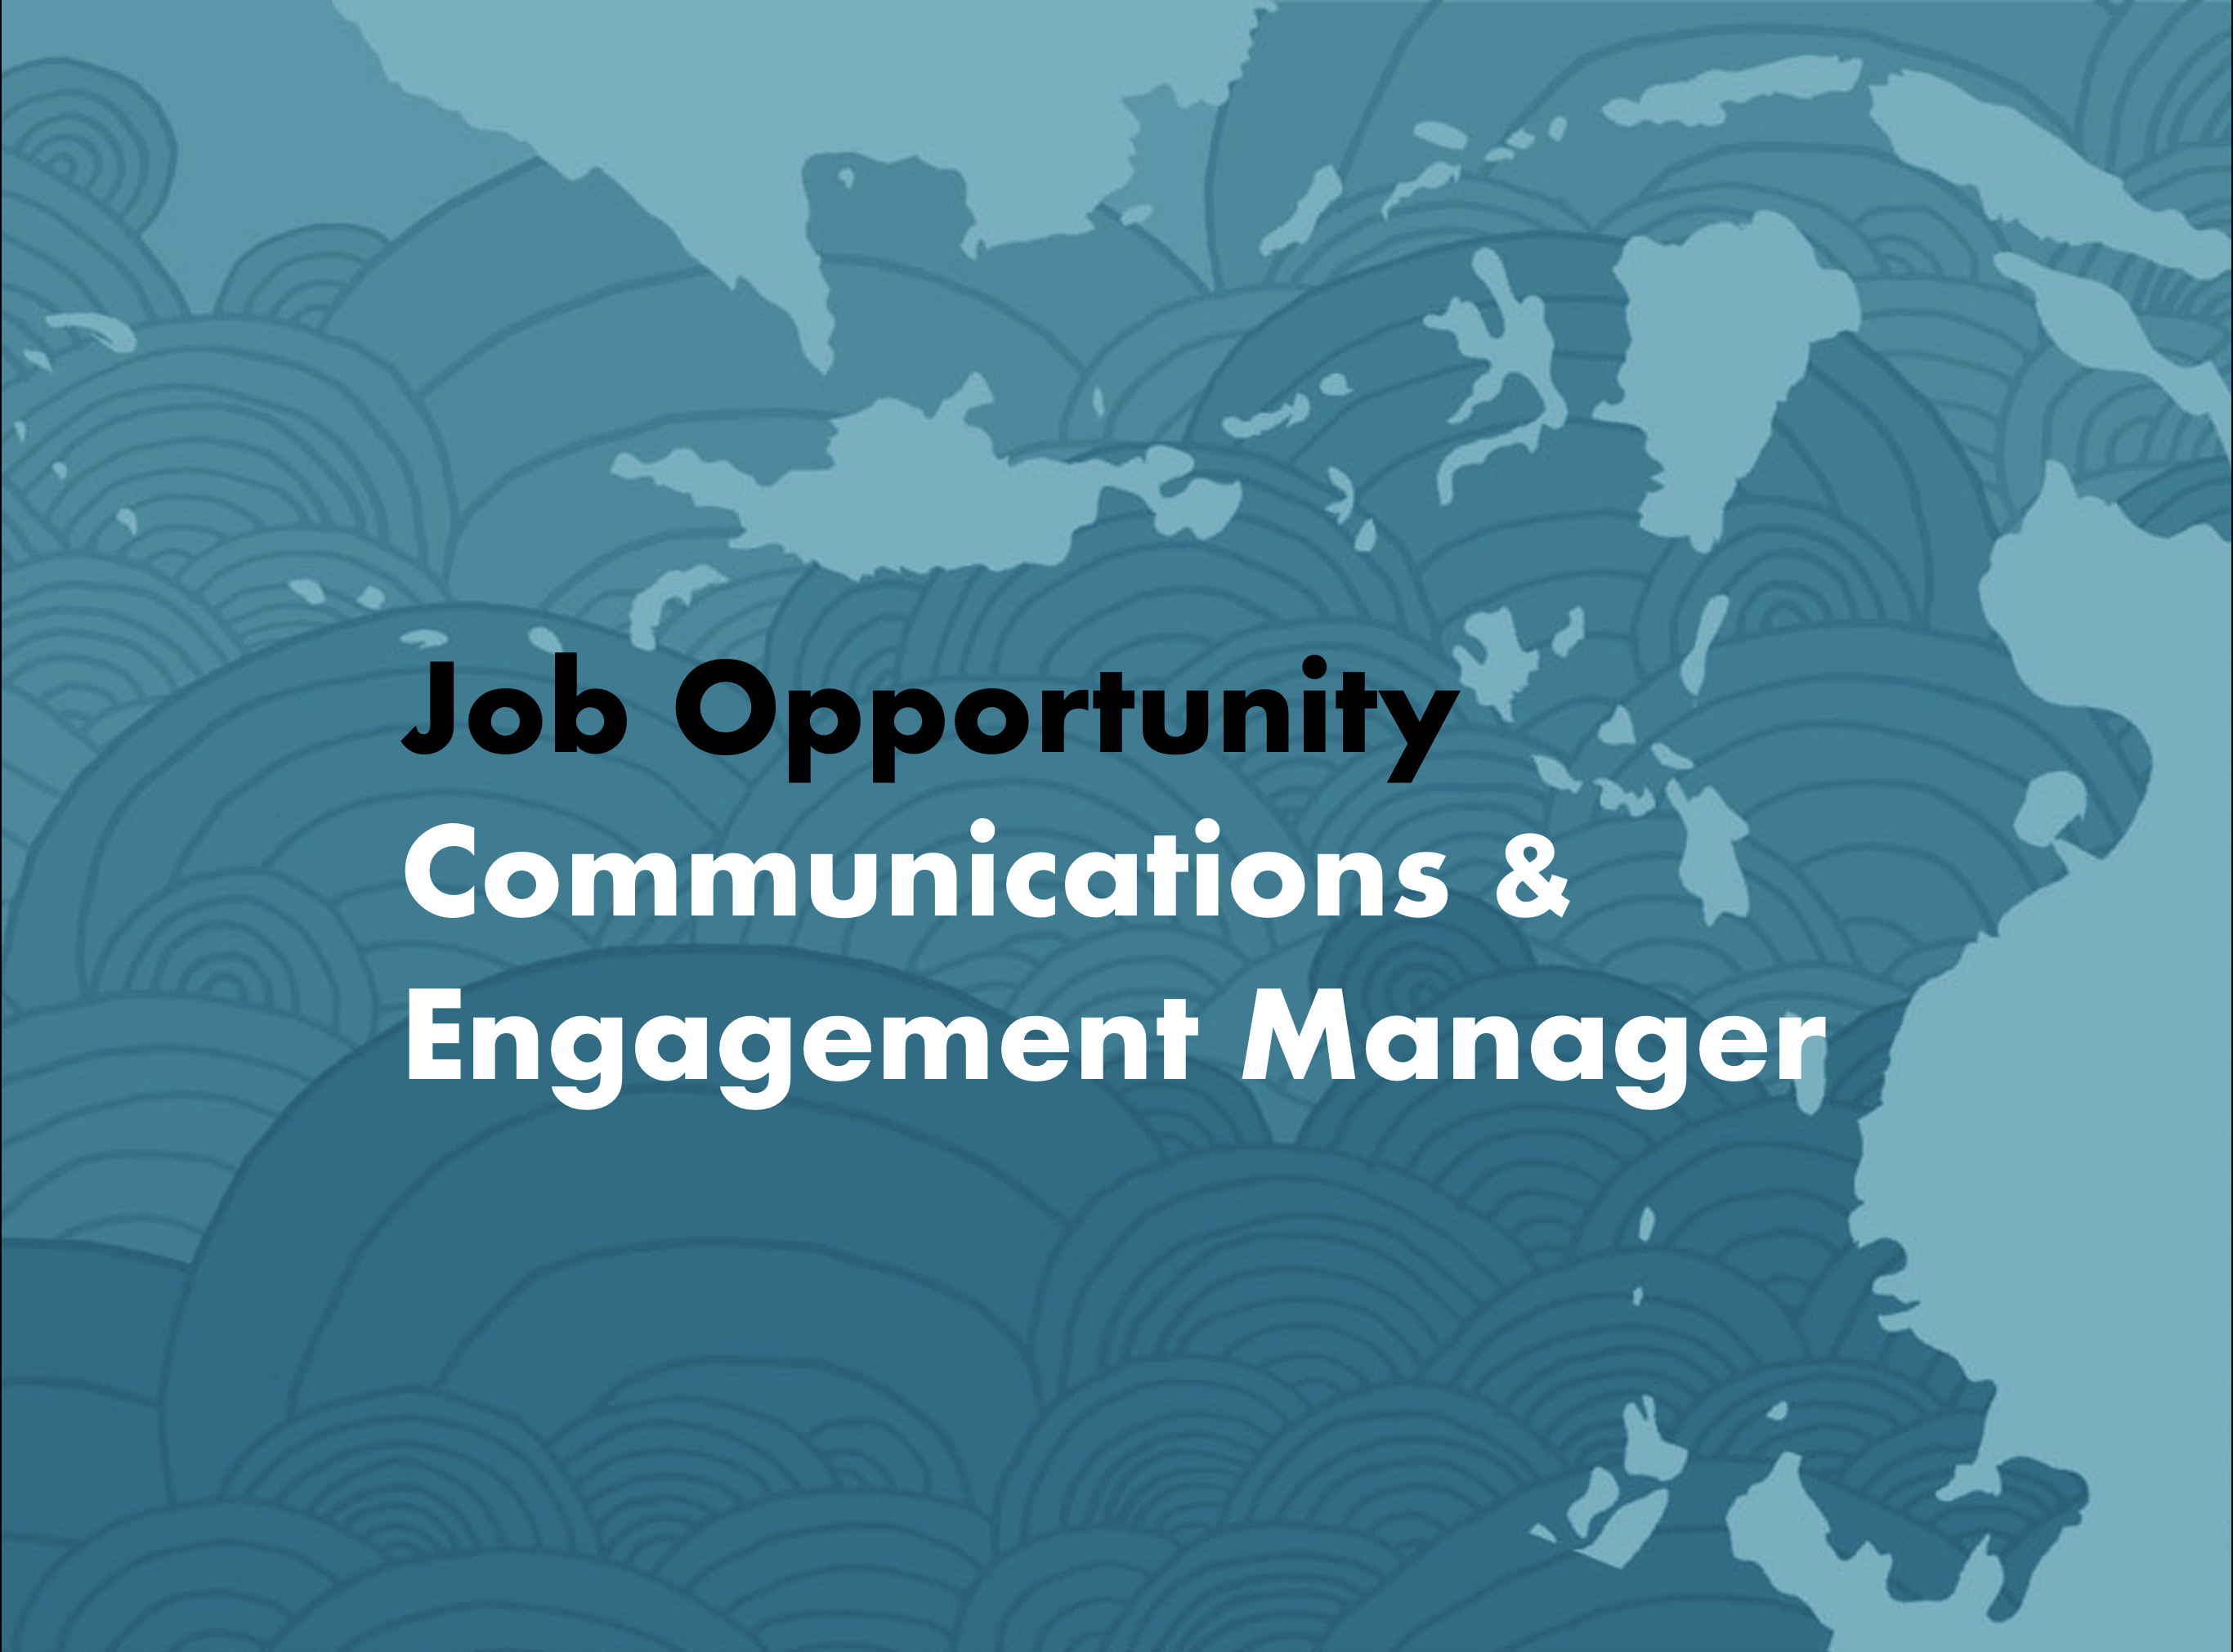 Comms & Engagement Manager